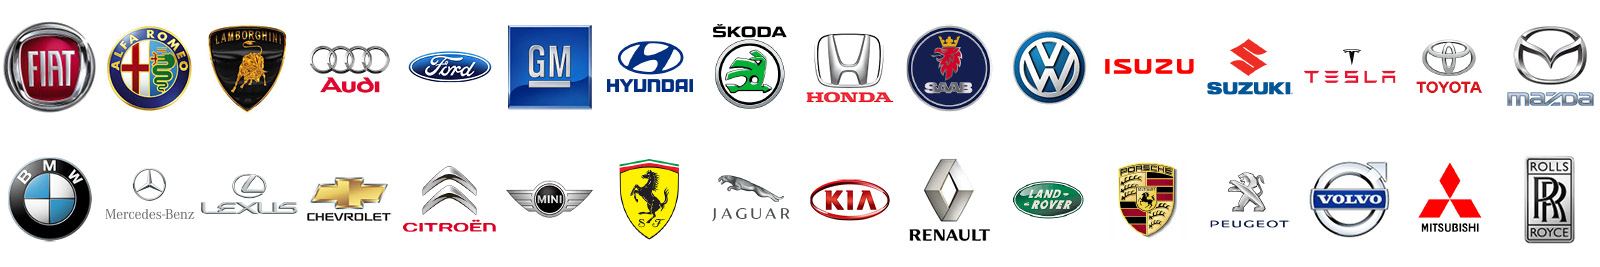 logo vehicle brands